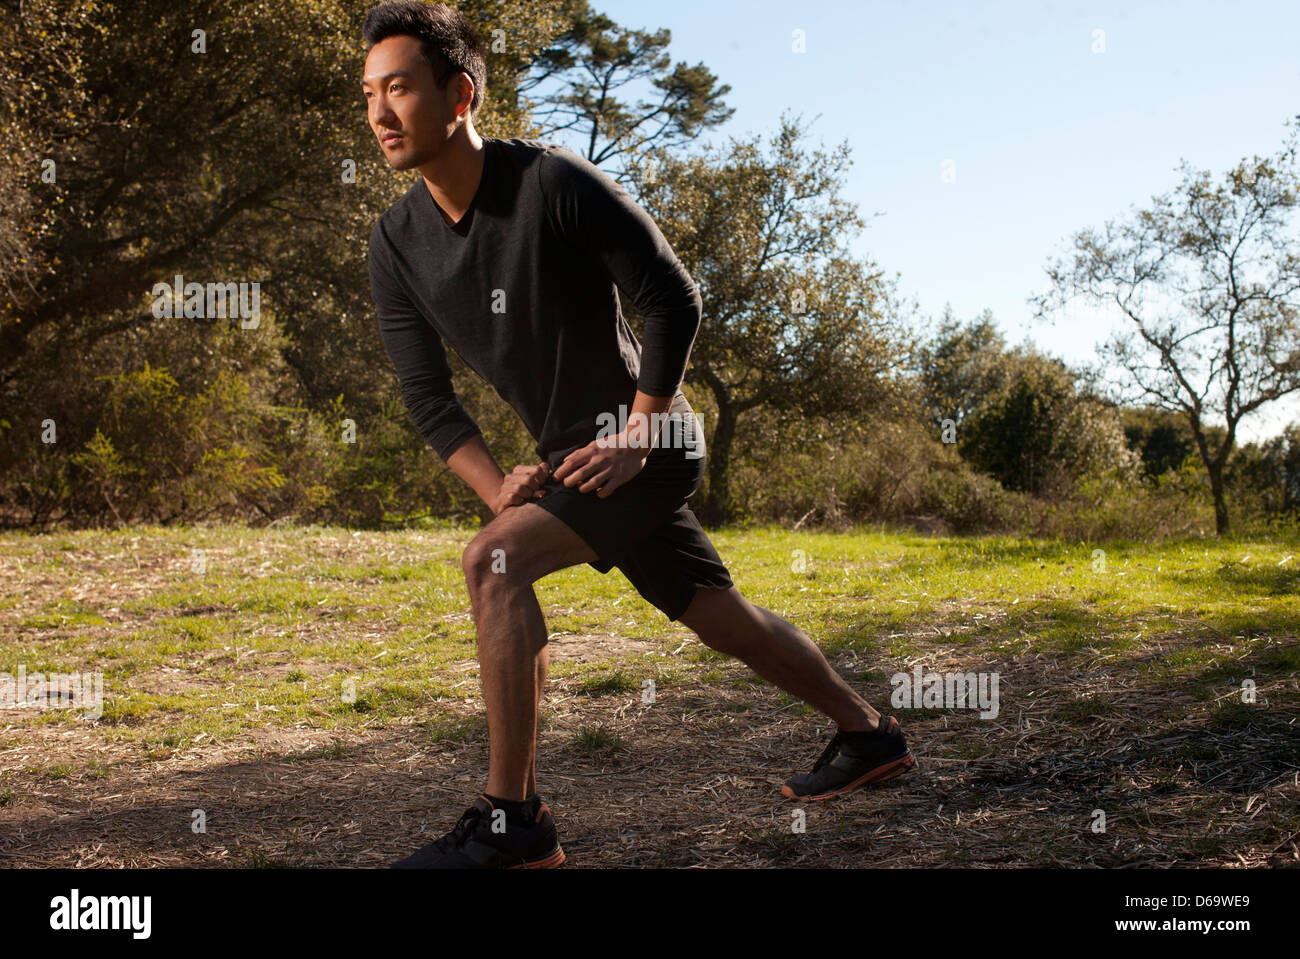 Runner stretching in park - Stock Image